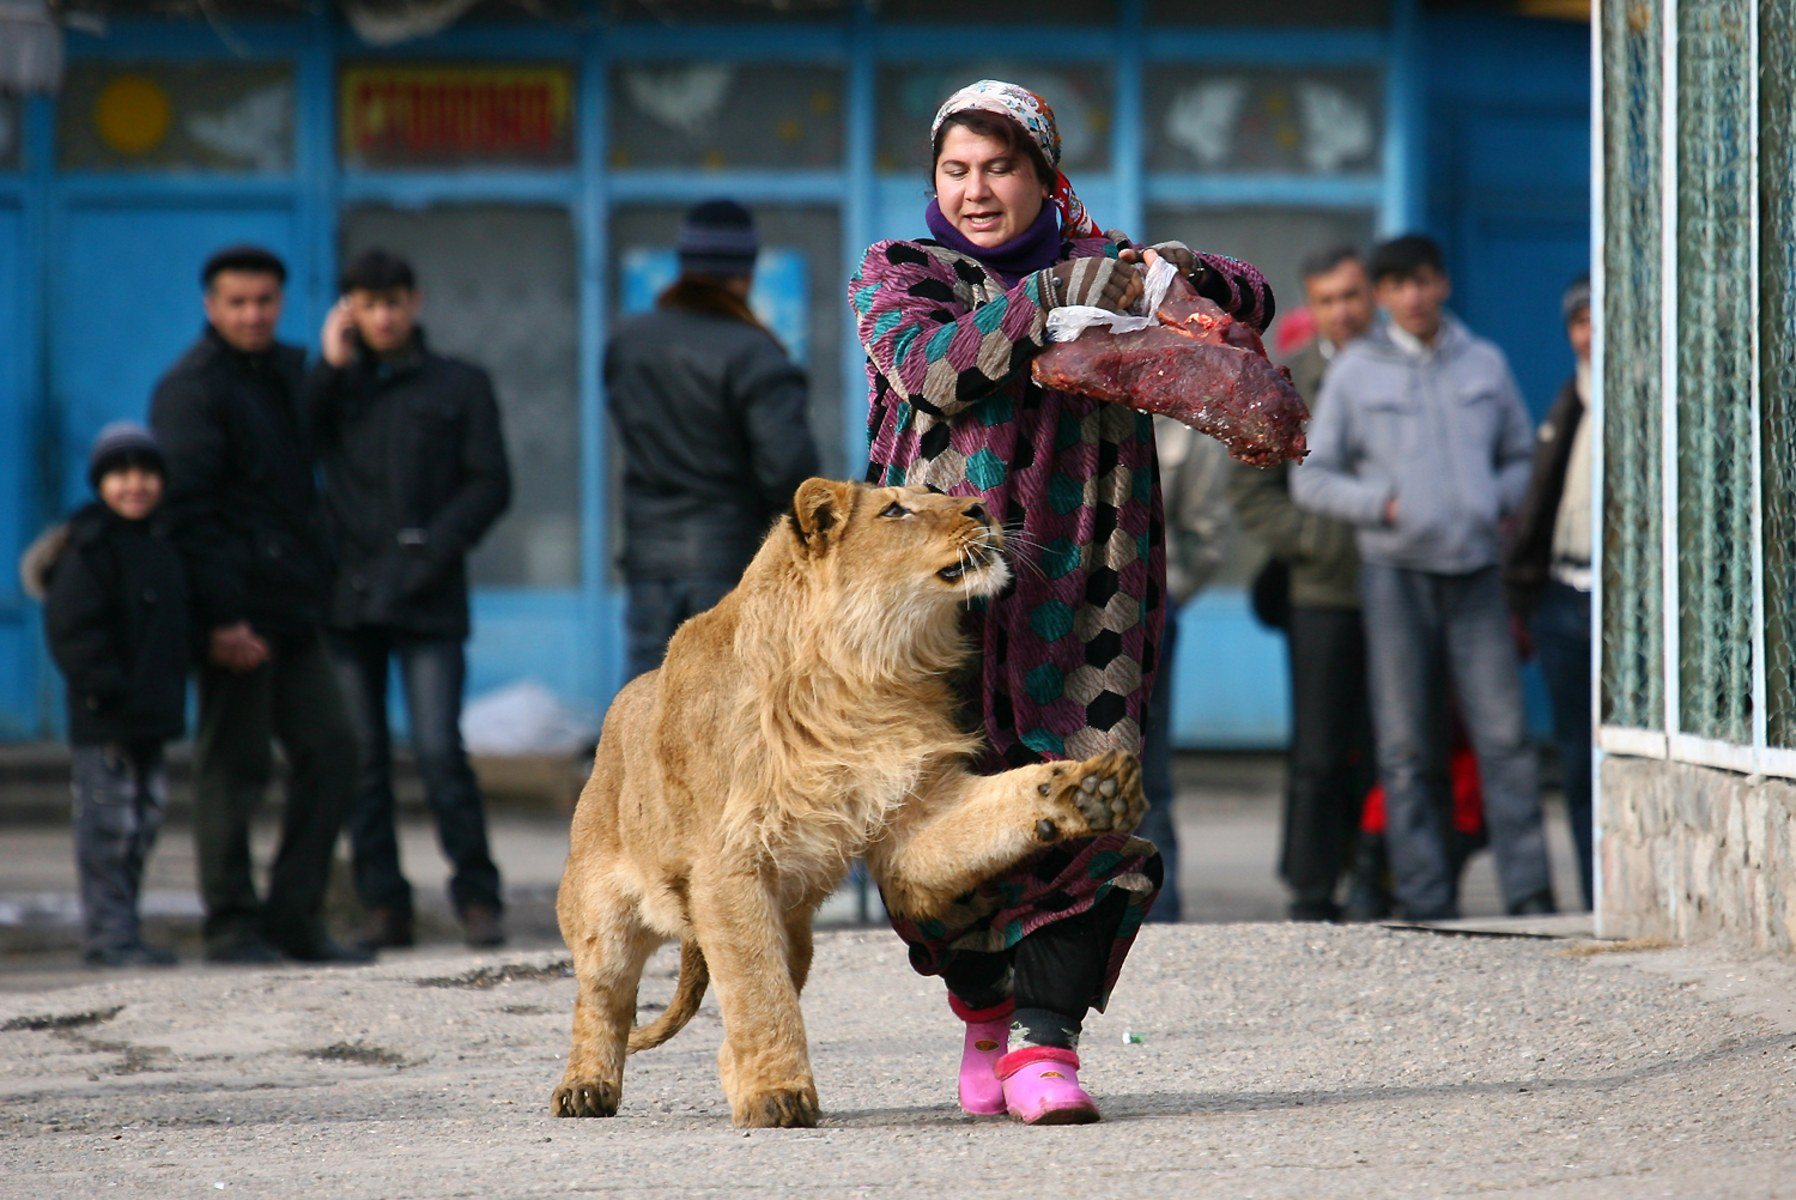 Image: Zukhro, an employee of the city zoo, walks with Vadik, a 18-month-old male lion, on the territory of the zoo in the capital Dushanbe